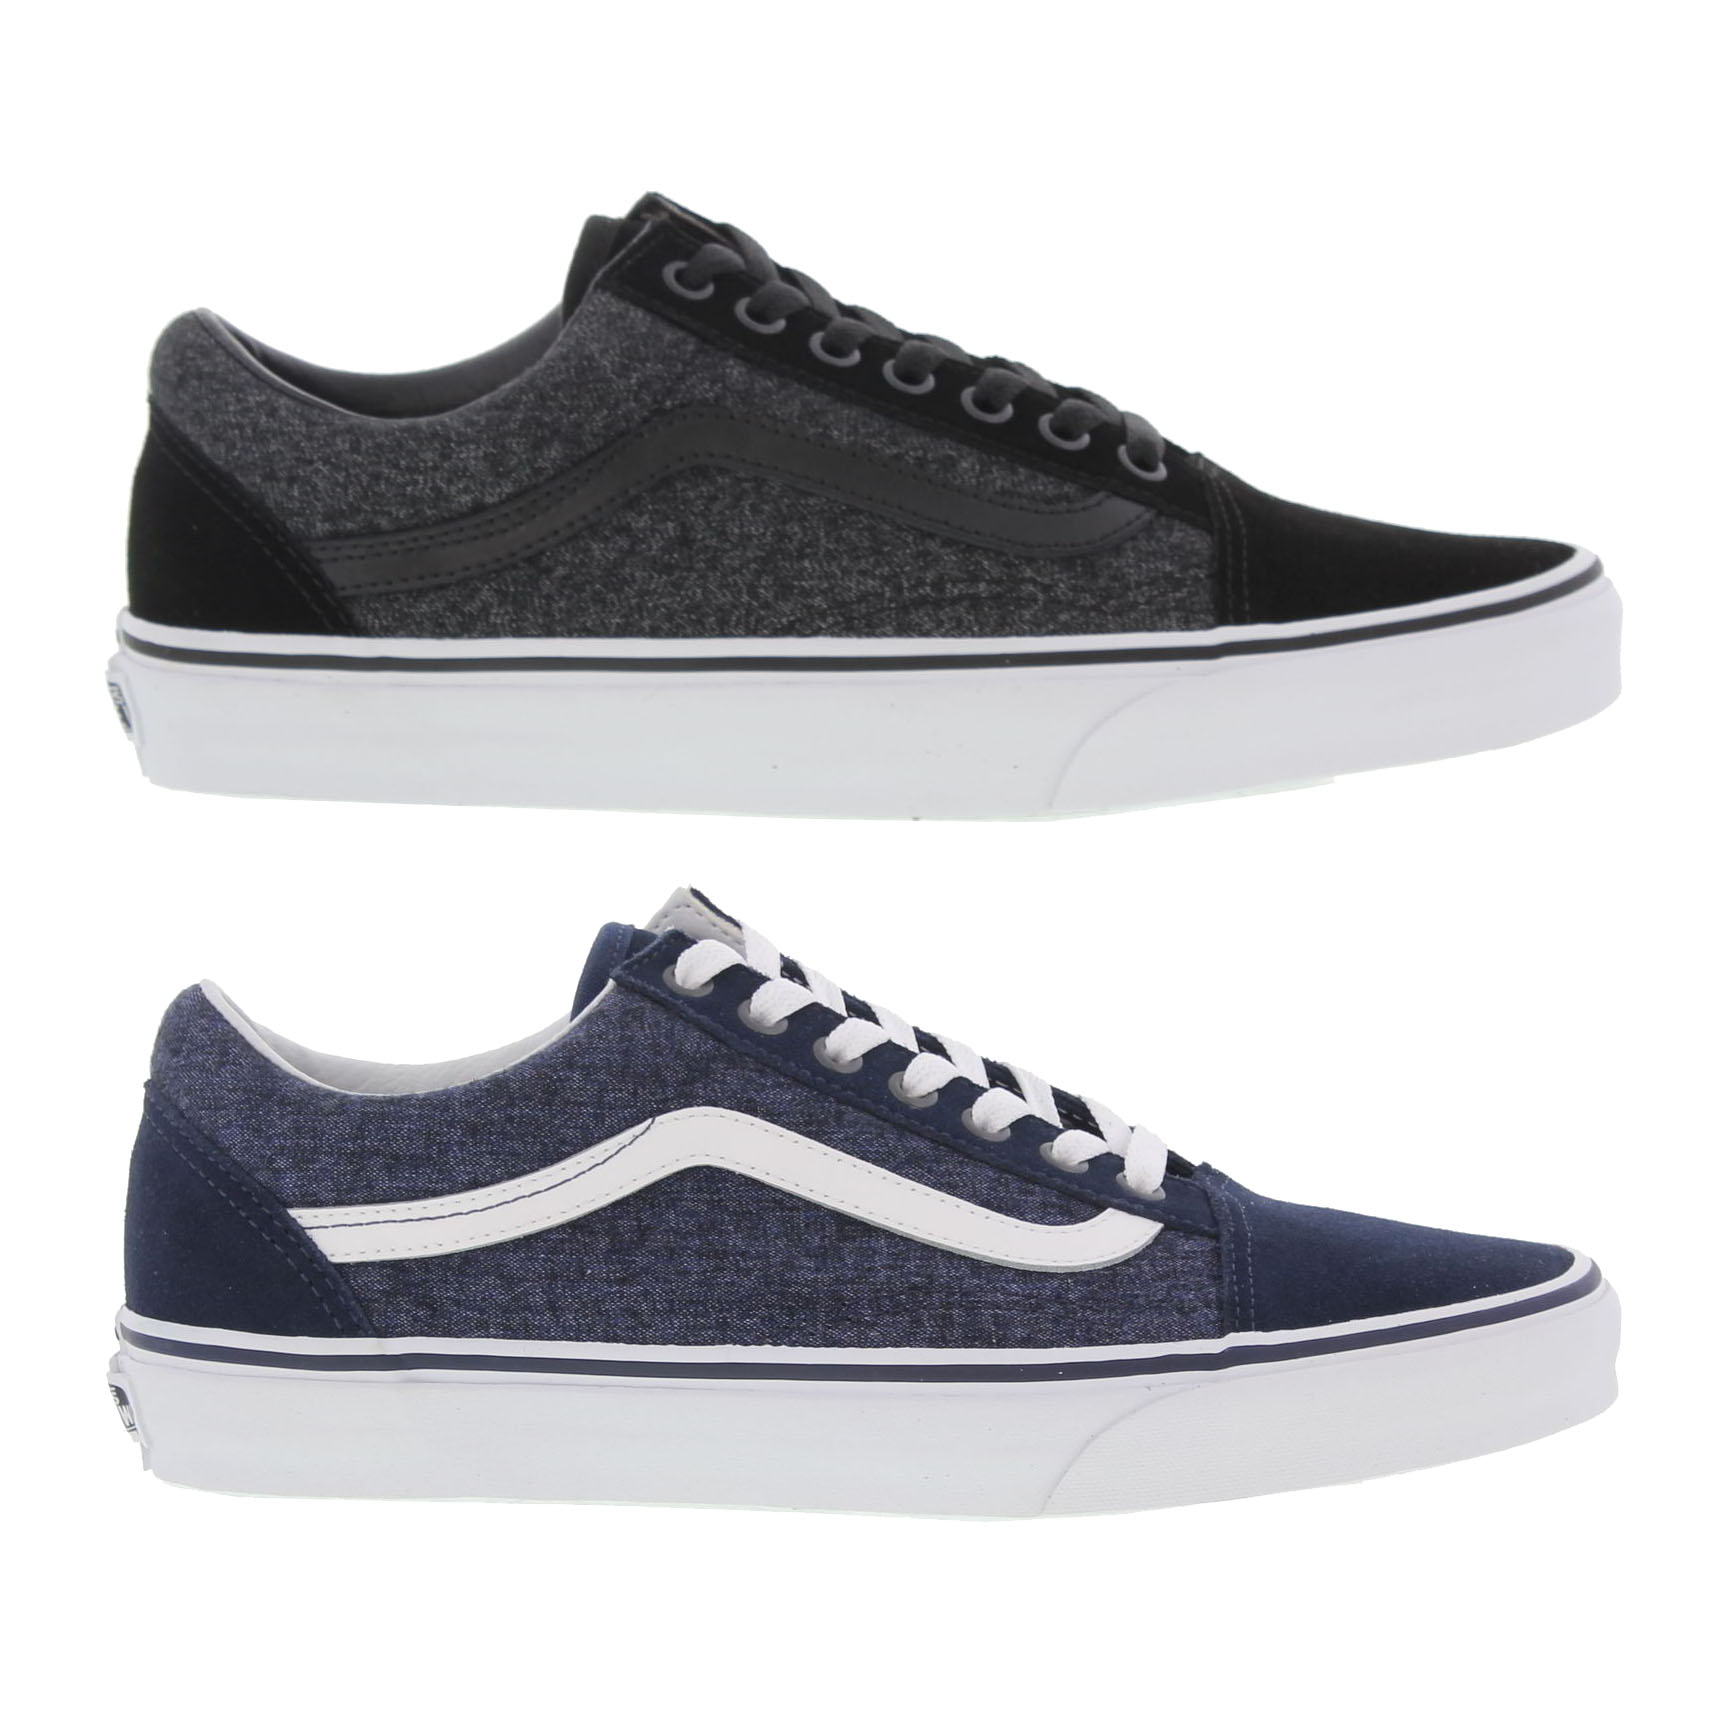 Vans Old Skool Features  Suede uppers  Iconic Stripe logo  Vulcanized  rubber outsole  Padded Collar 57c3806465f